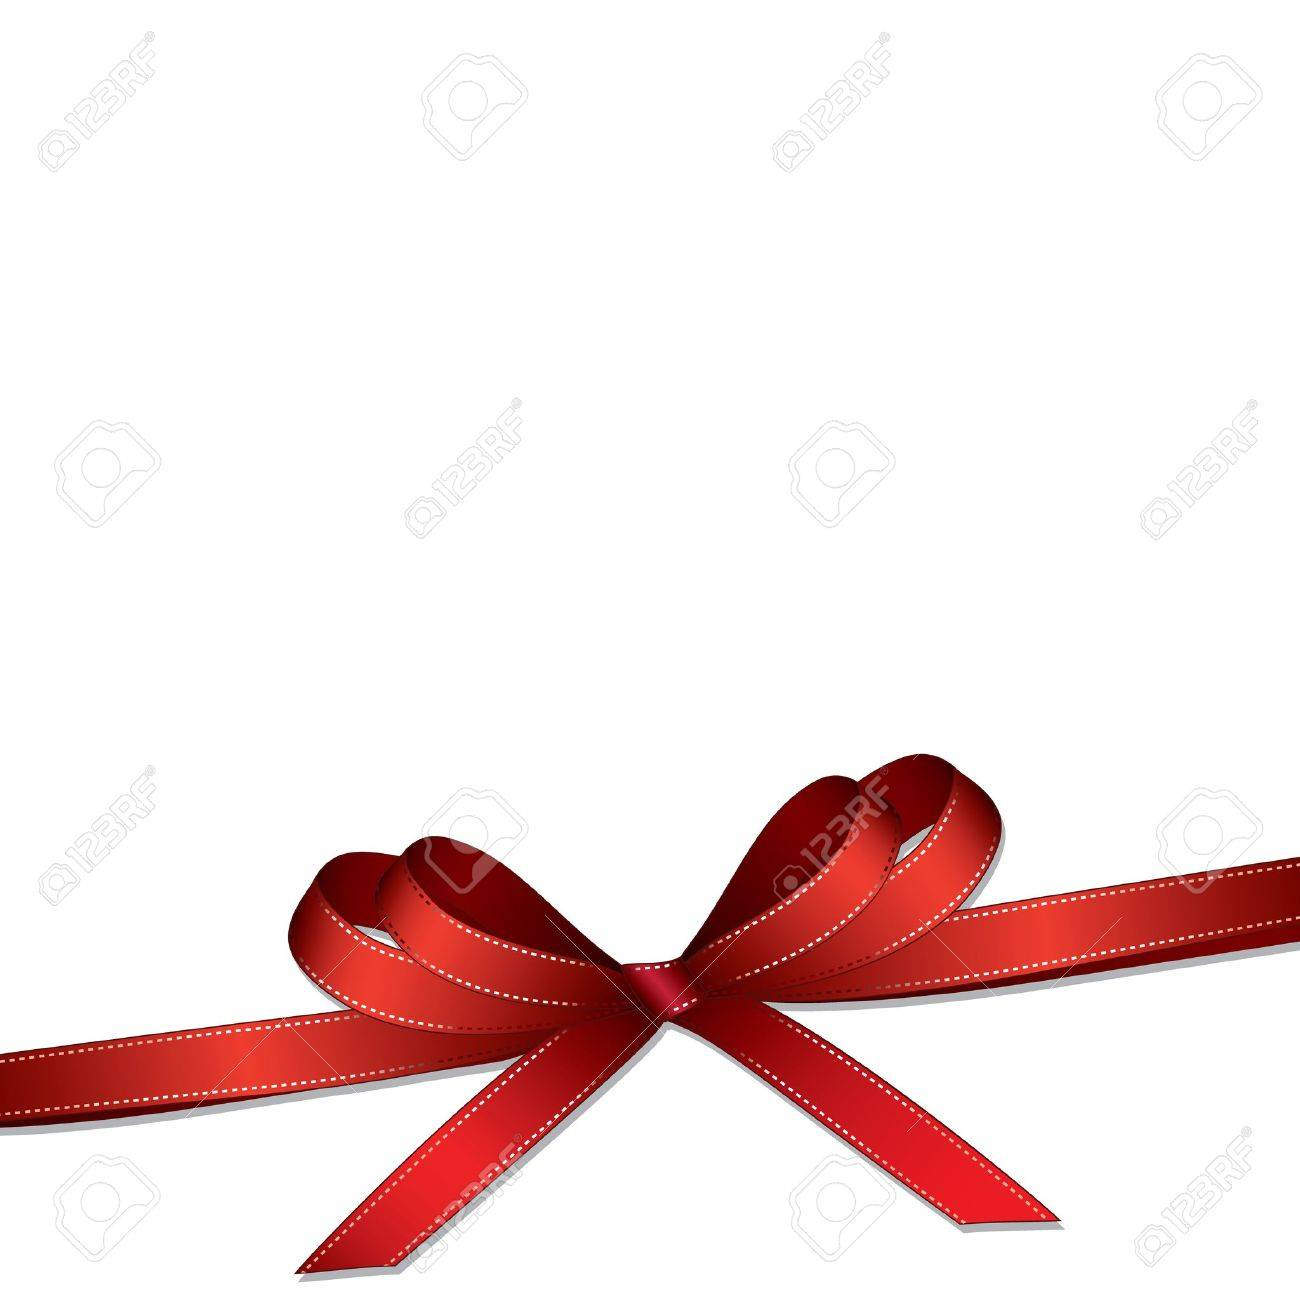 Red gift bows border with clipping path for easy background removing - Ribbon Bow Red Ribbon And Bow Isolated On White Background